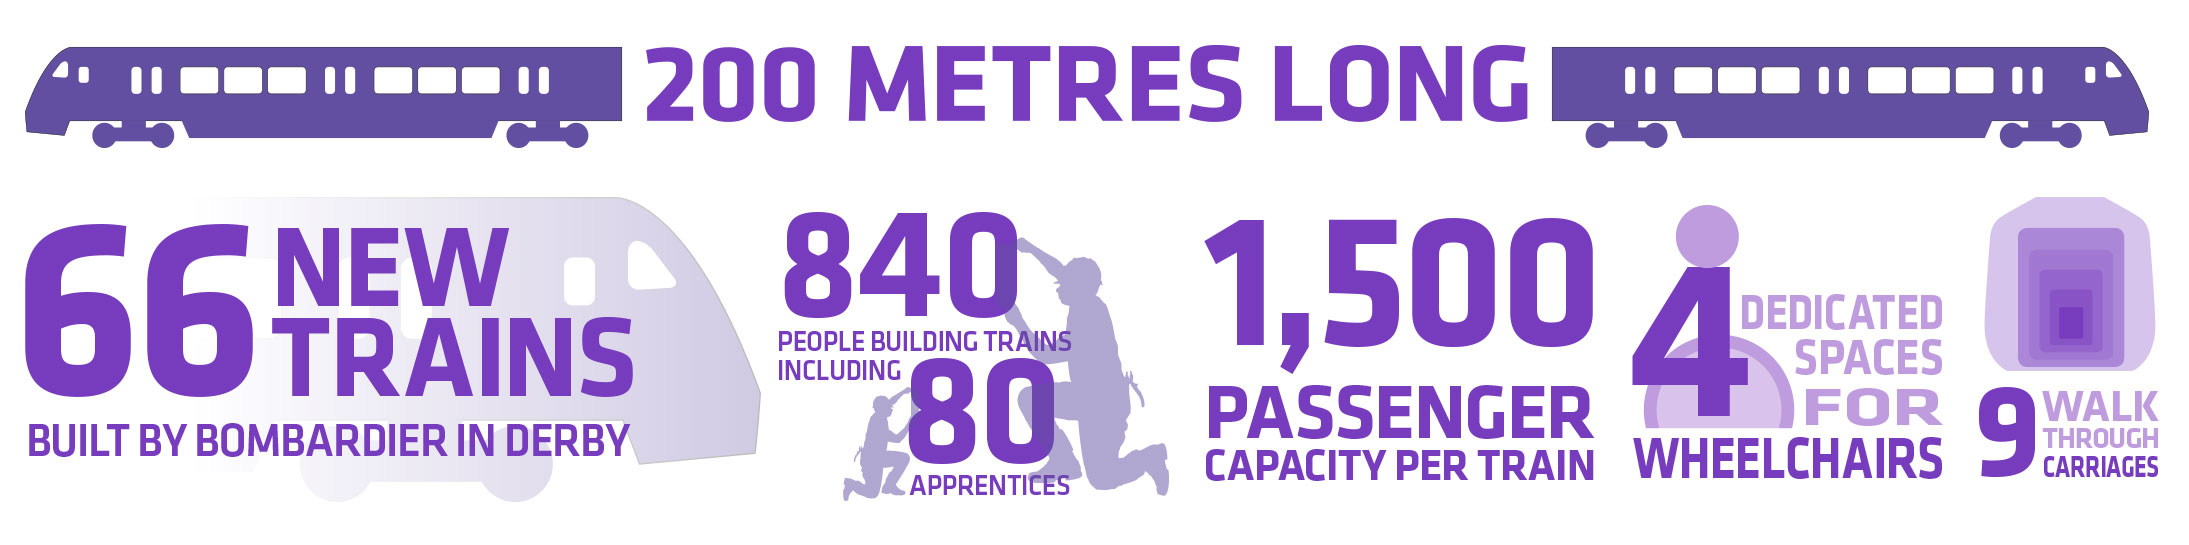 Elizabeth line trains infographic